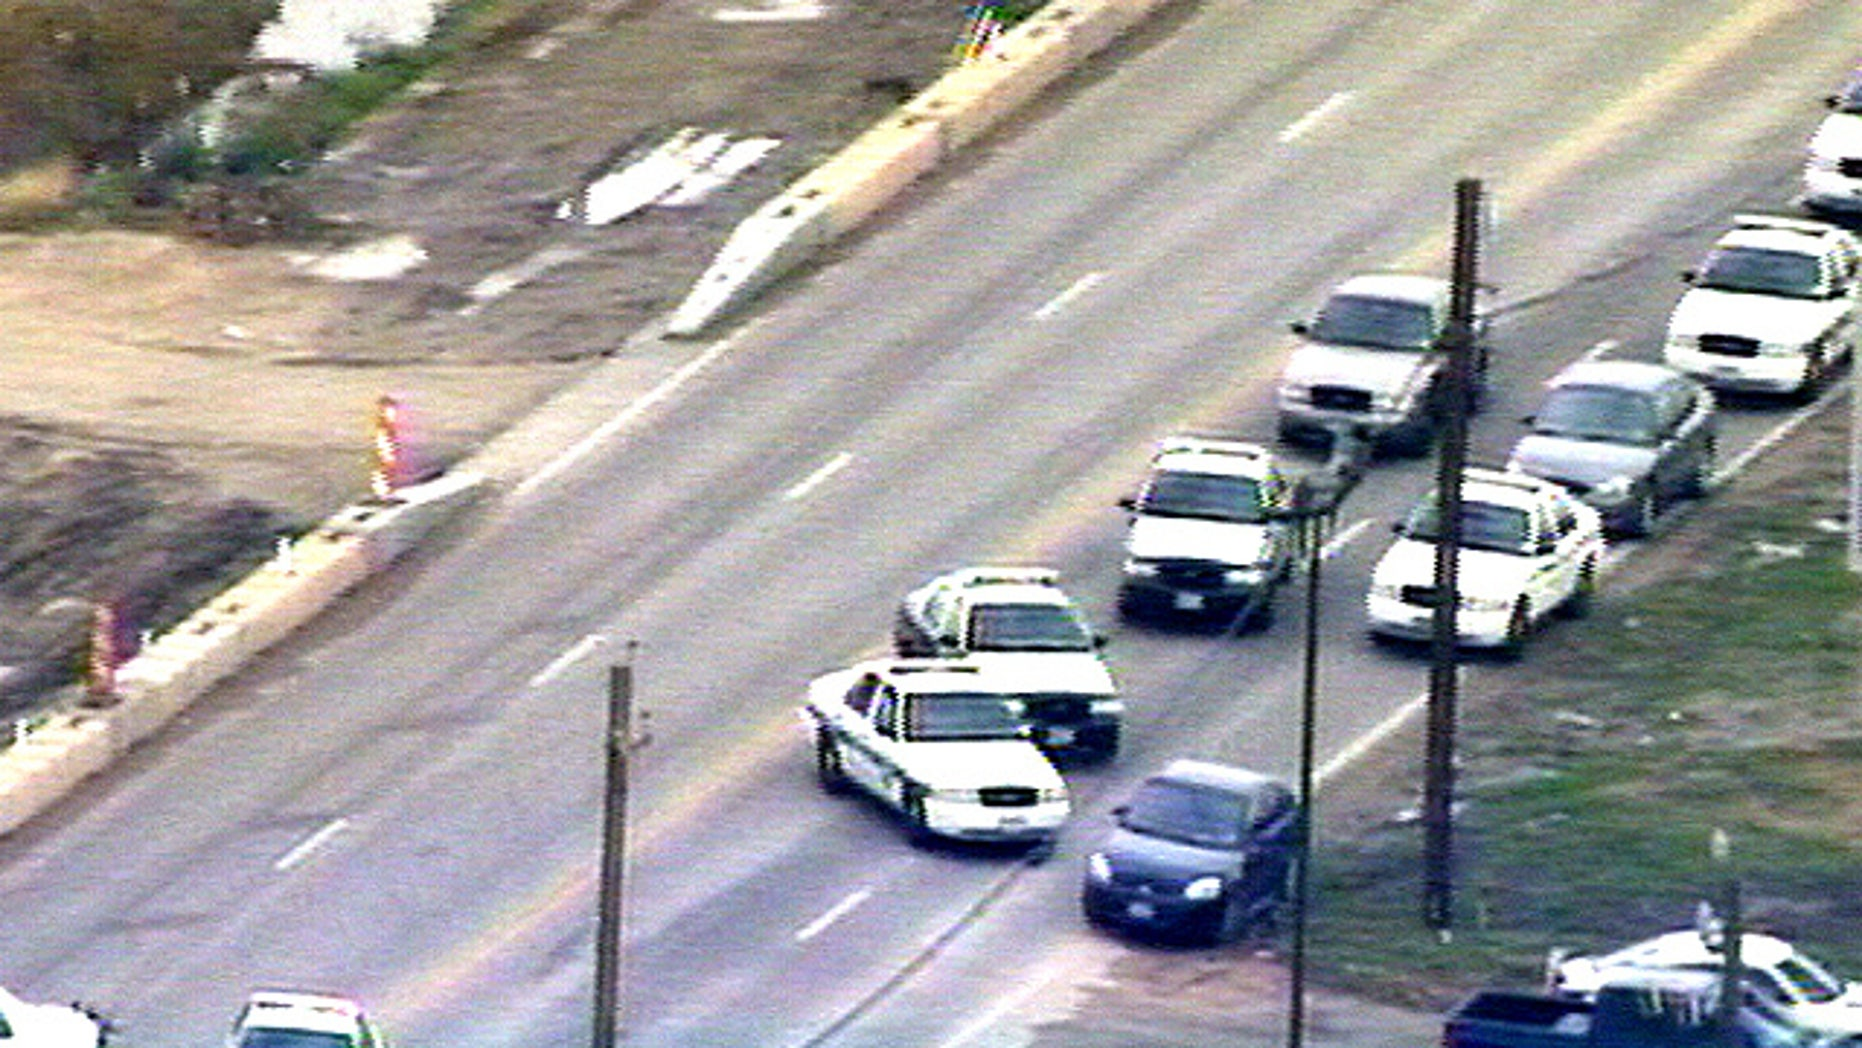 Police block road during Pearland, TX bank robbery.